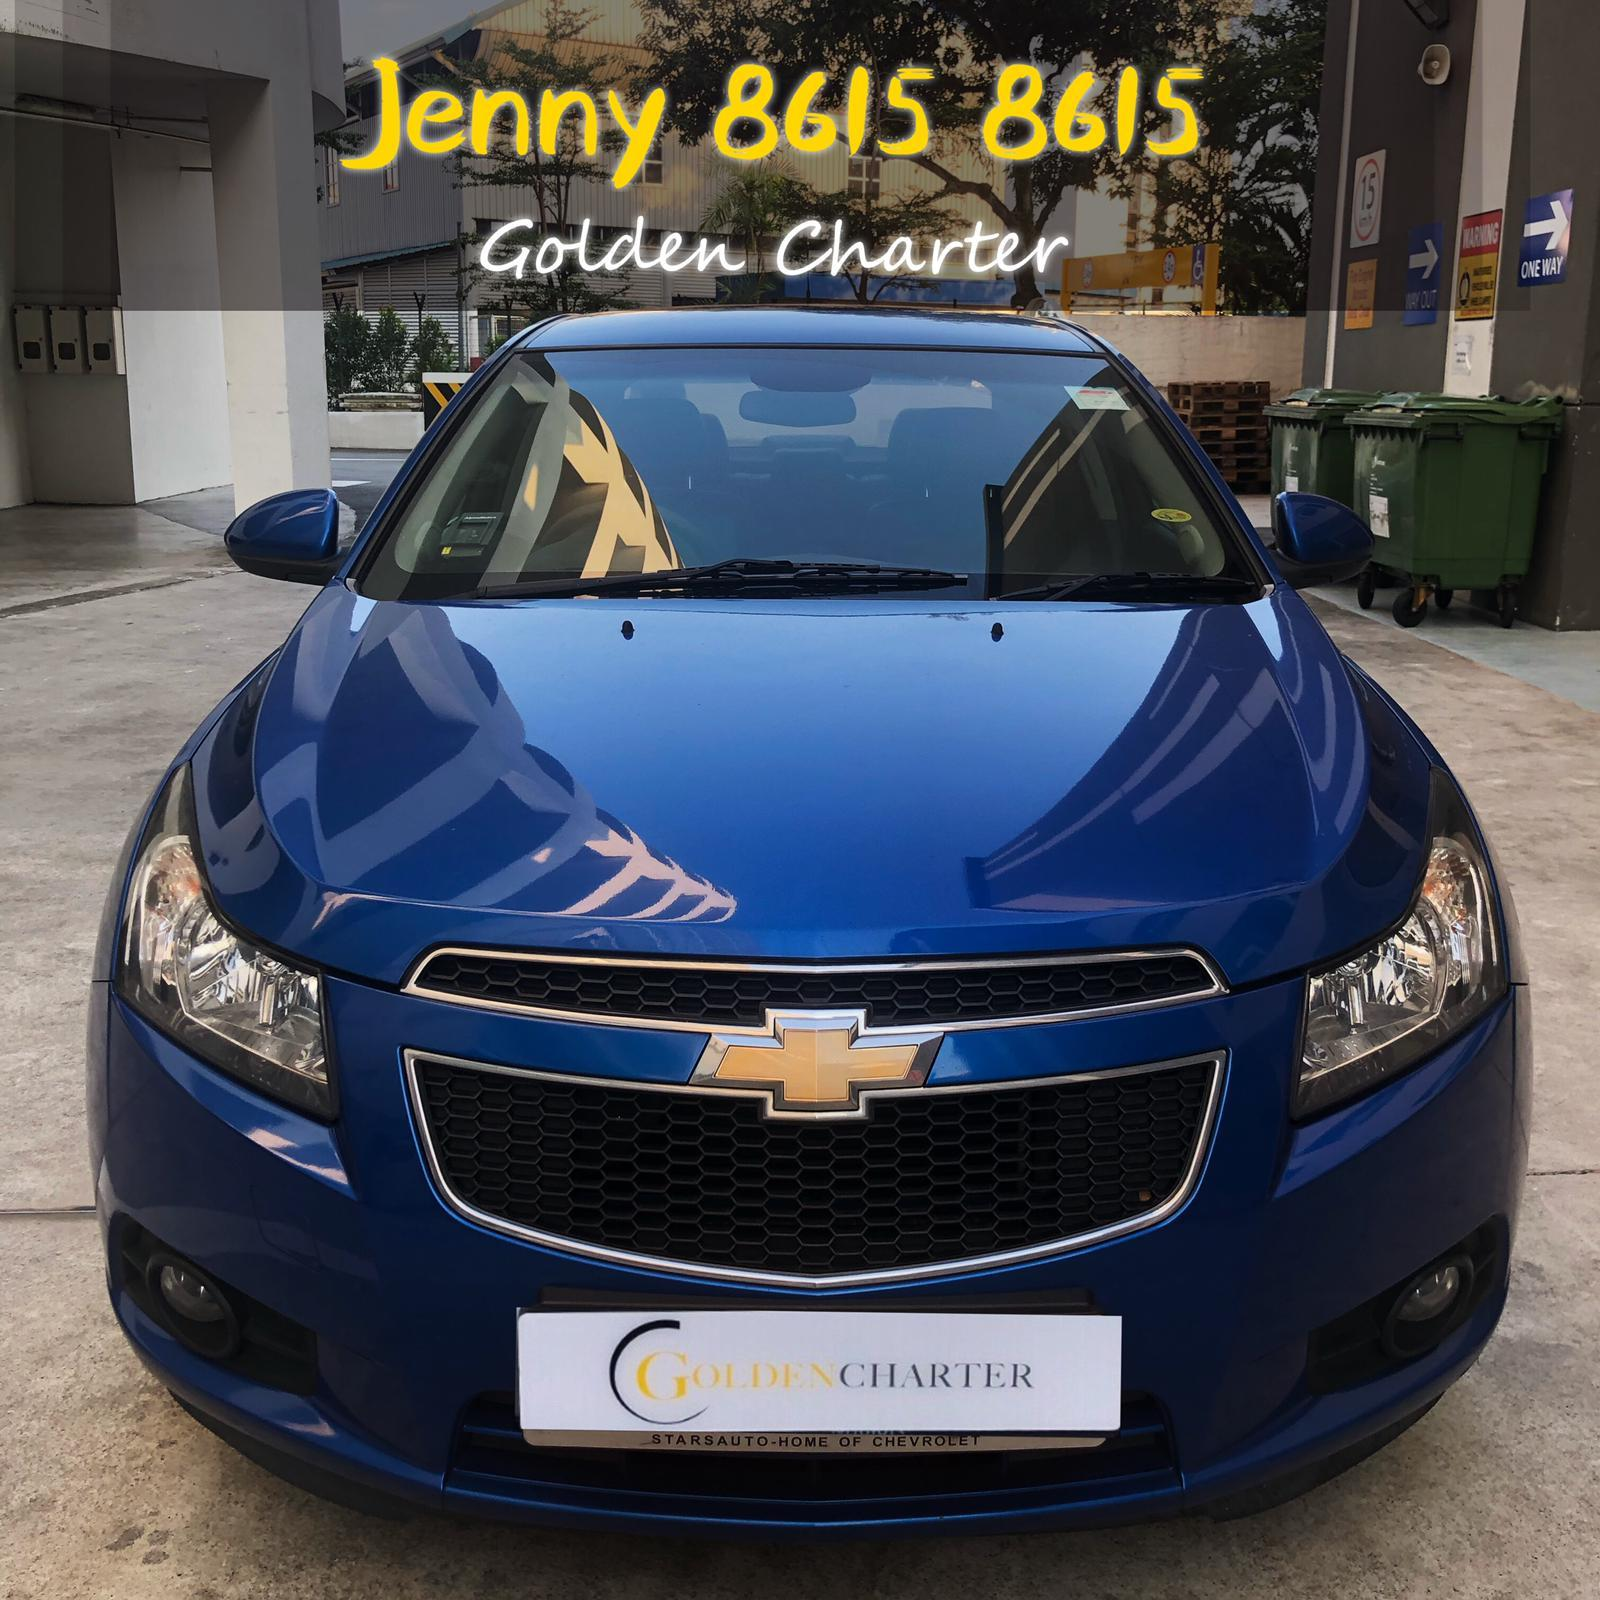 Chevrolet Cruze 1.5a for rent Grab Rental Gojek Or Personal Use low price and CHEAPEST RENTAL